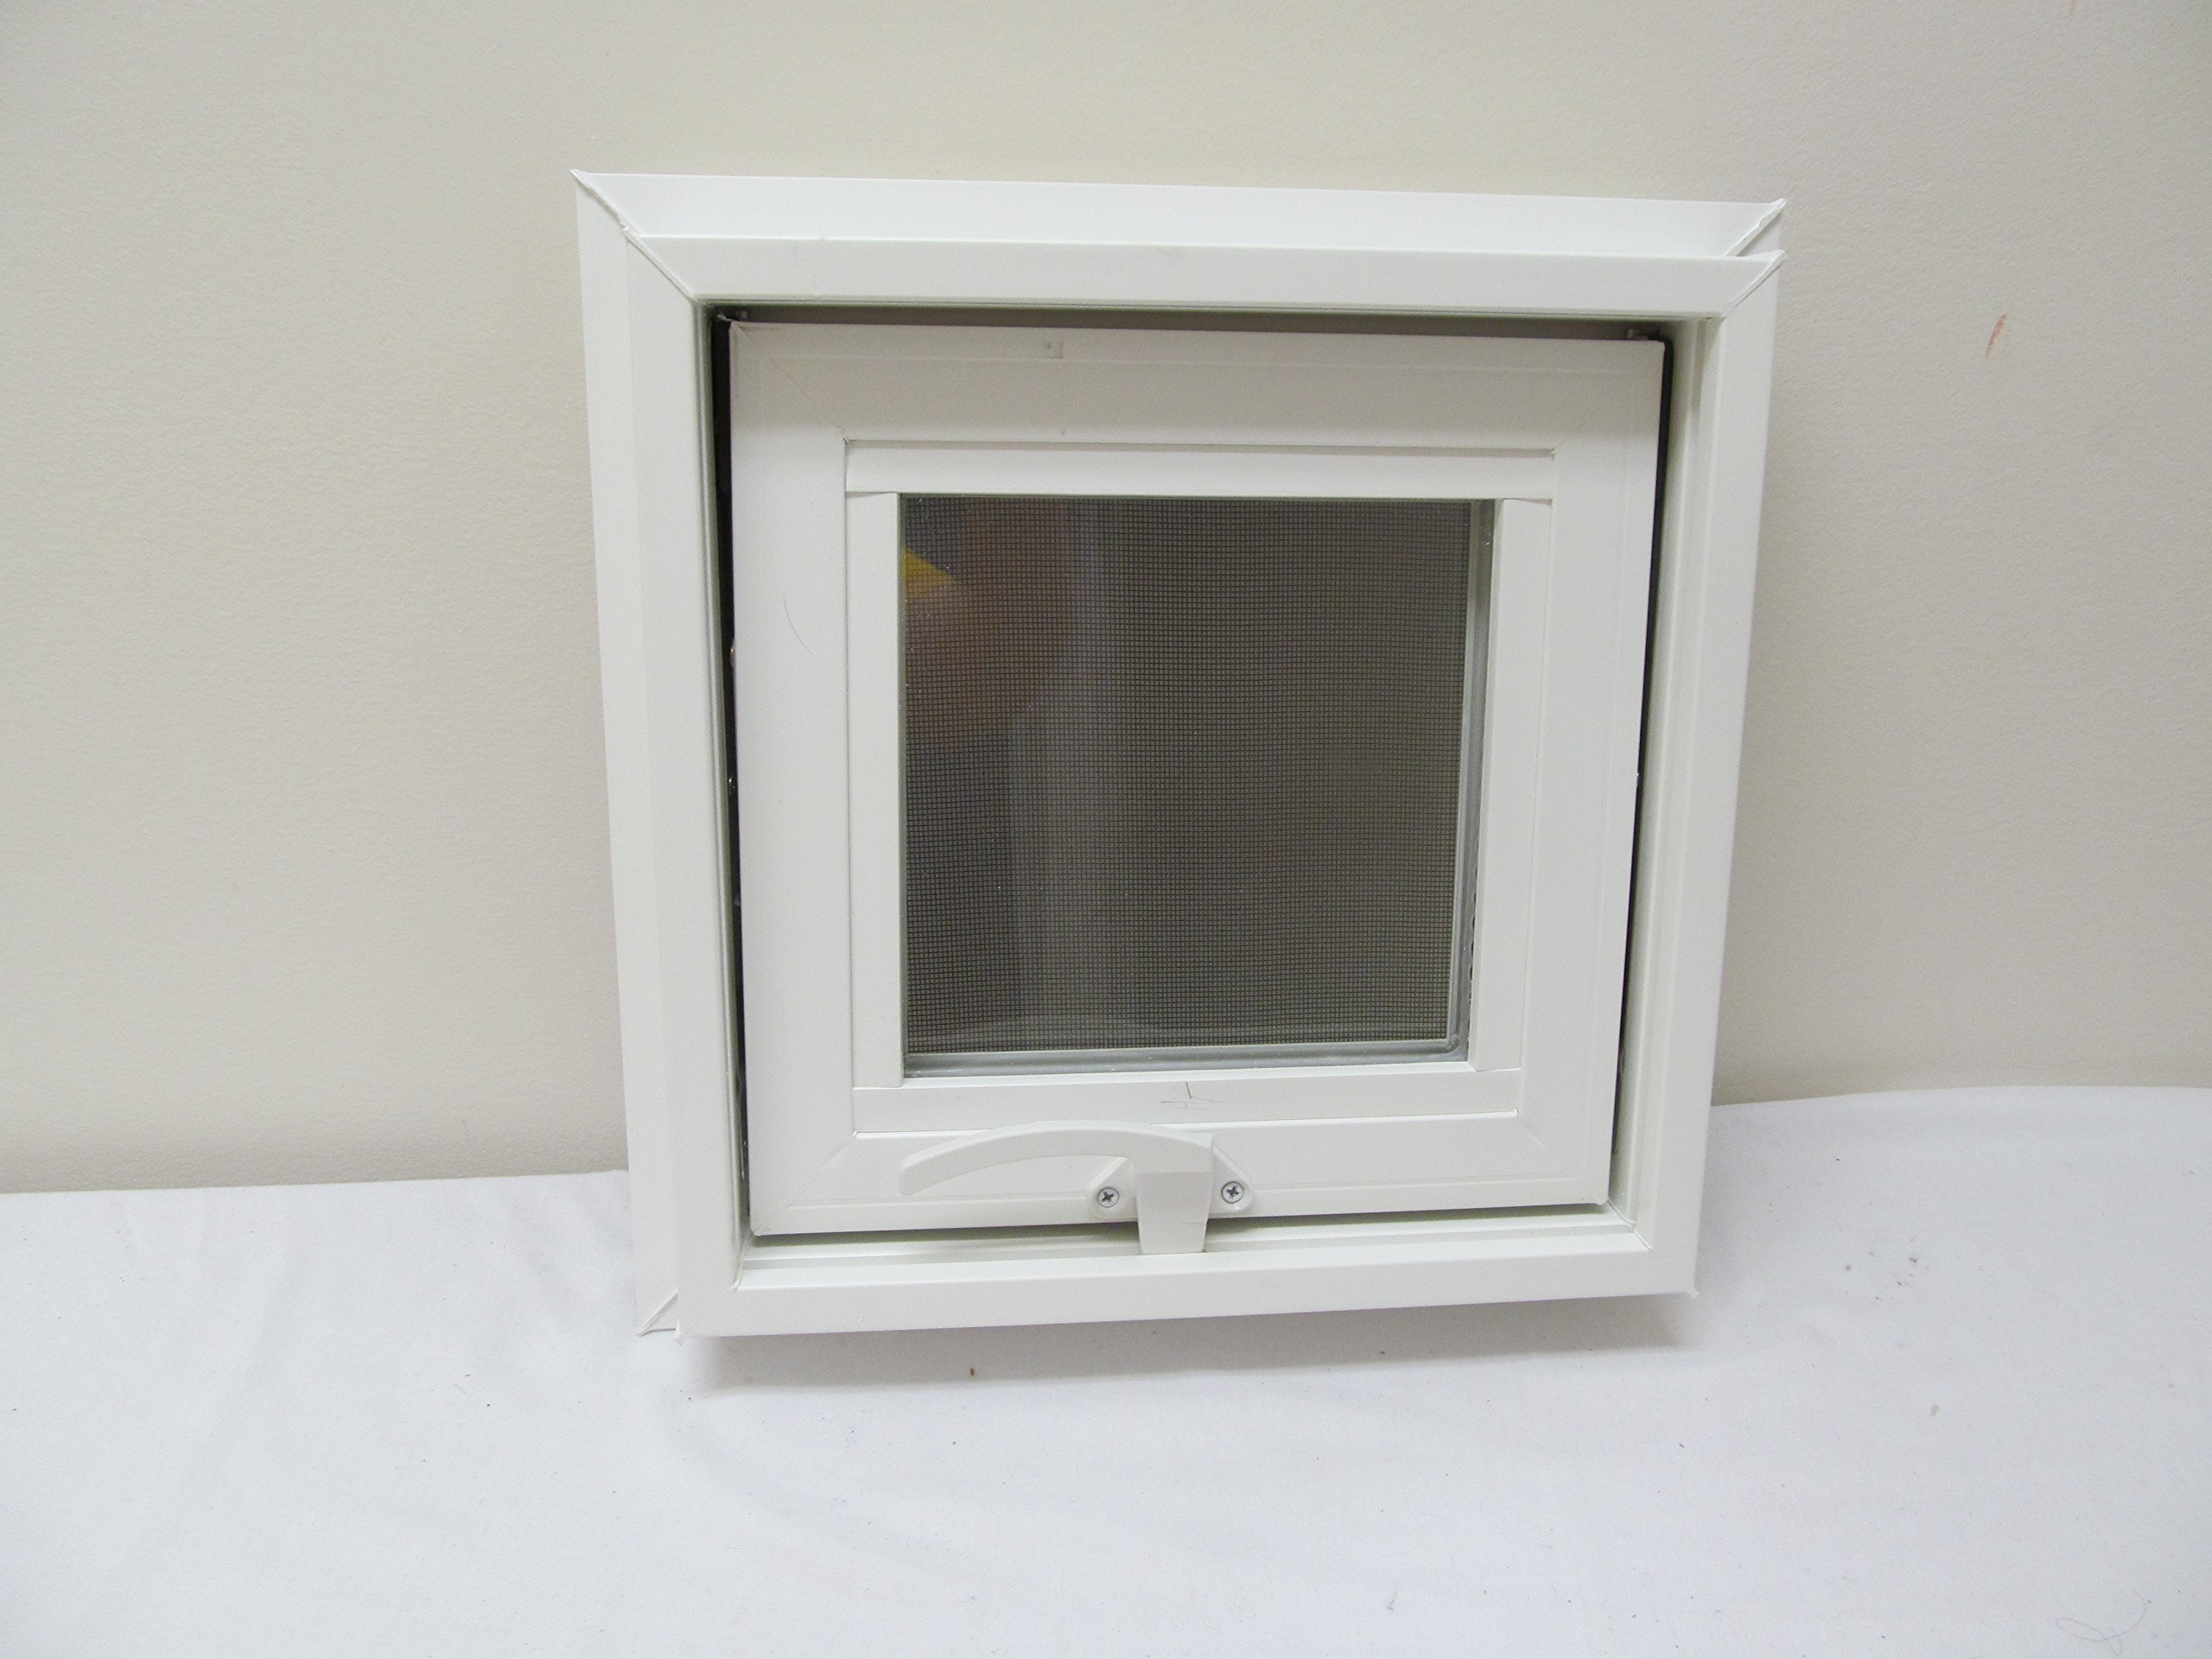 Awning Windows Style 12'' x 12'' Vinyl PVC Windows Home Windows Tiny House Windows Playhouse Windows Shed Windows by Shed Windows and More